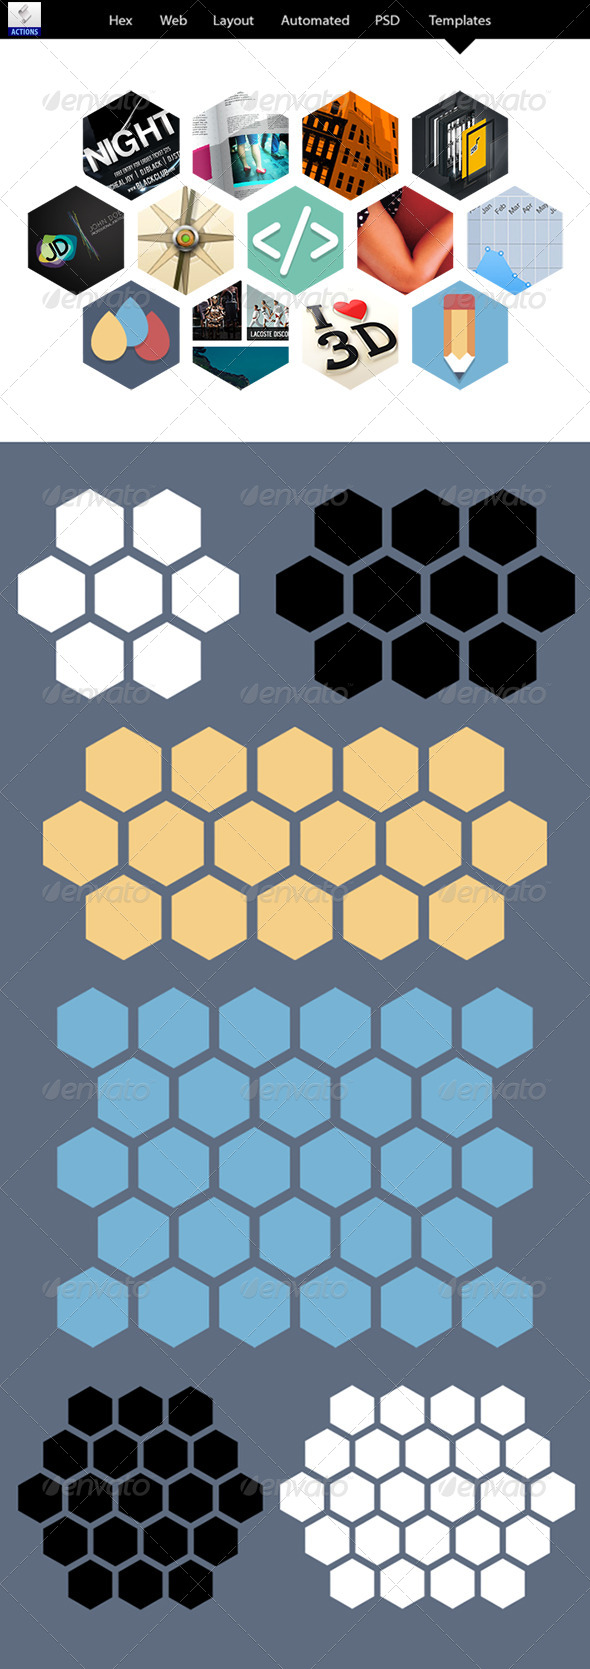 GraphicRiver Hex Web Layouts Automated PSD Templates 6645051